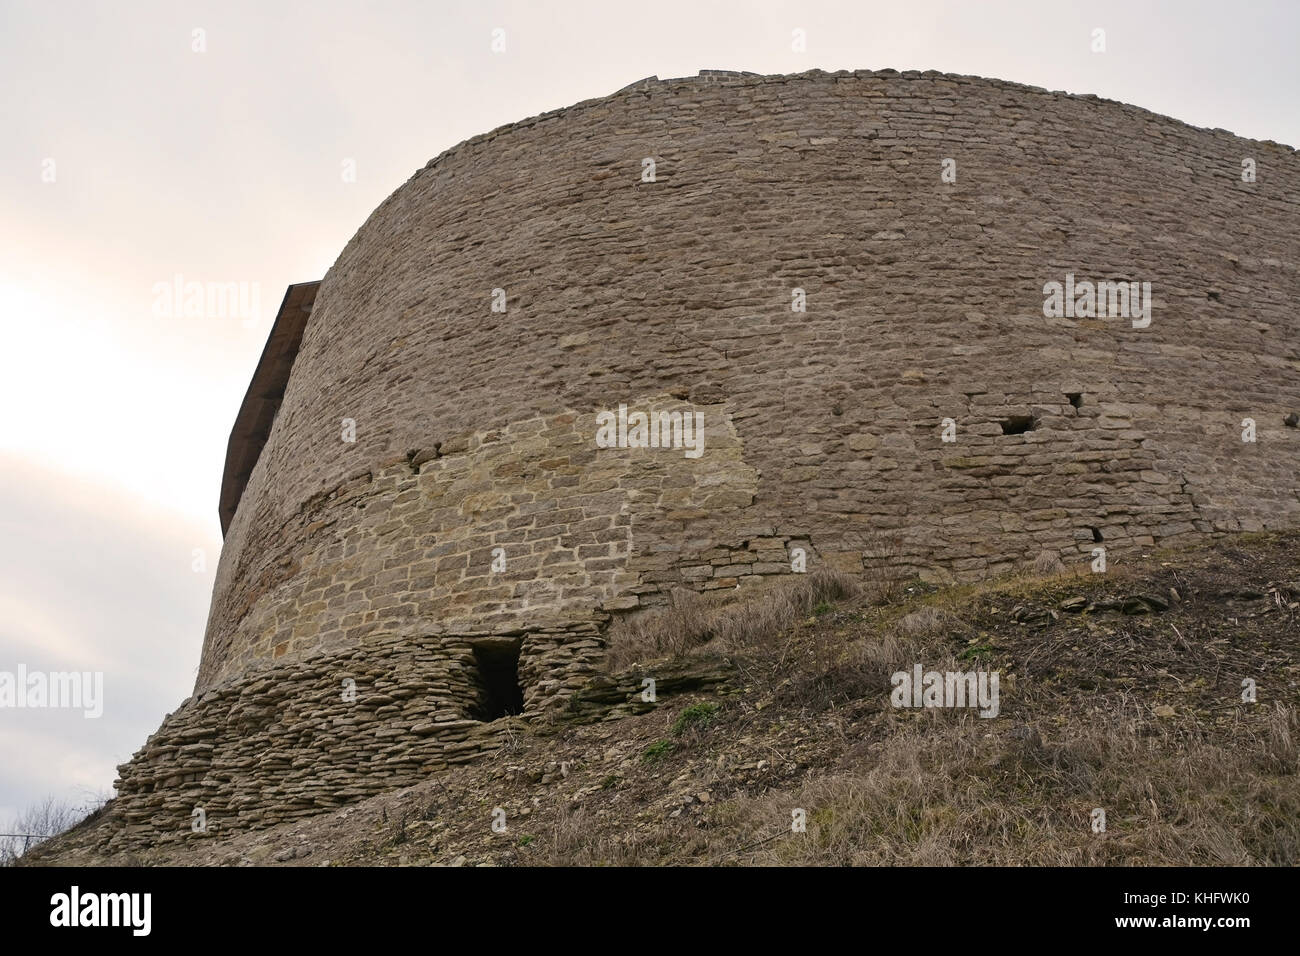 Izborsk fortress, Pskov region: photo and description, history of sights, how to get 67